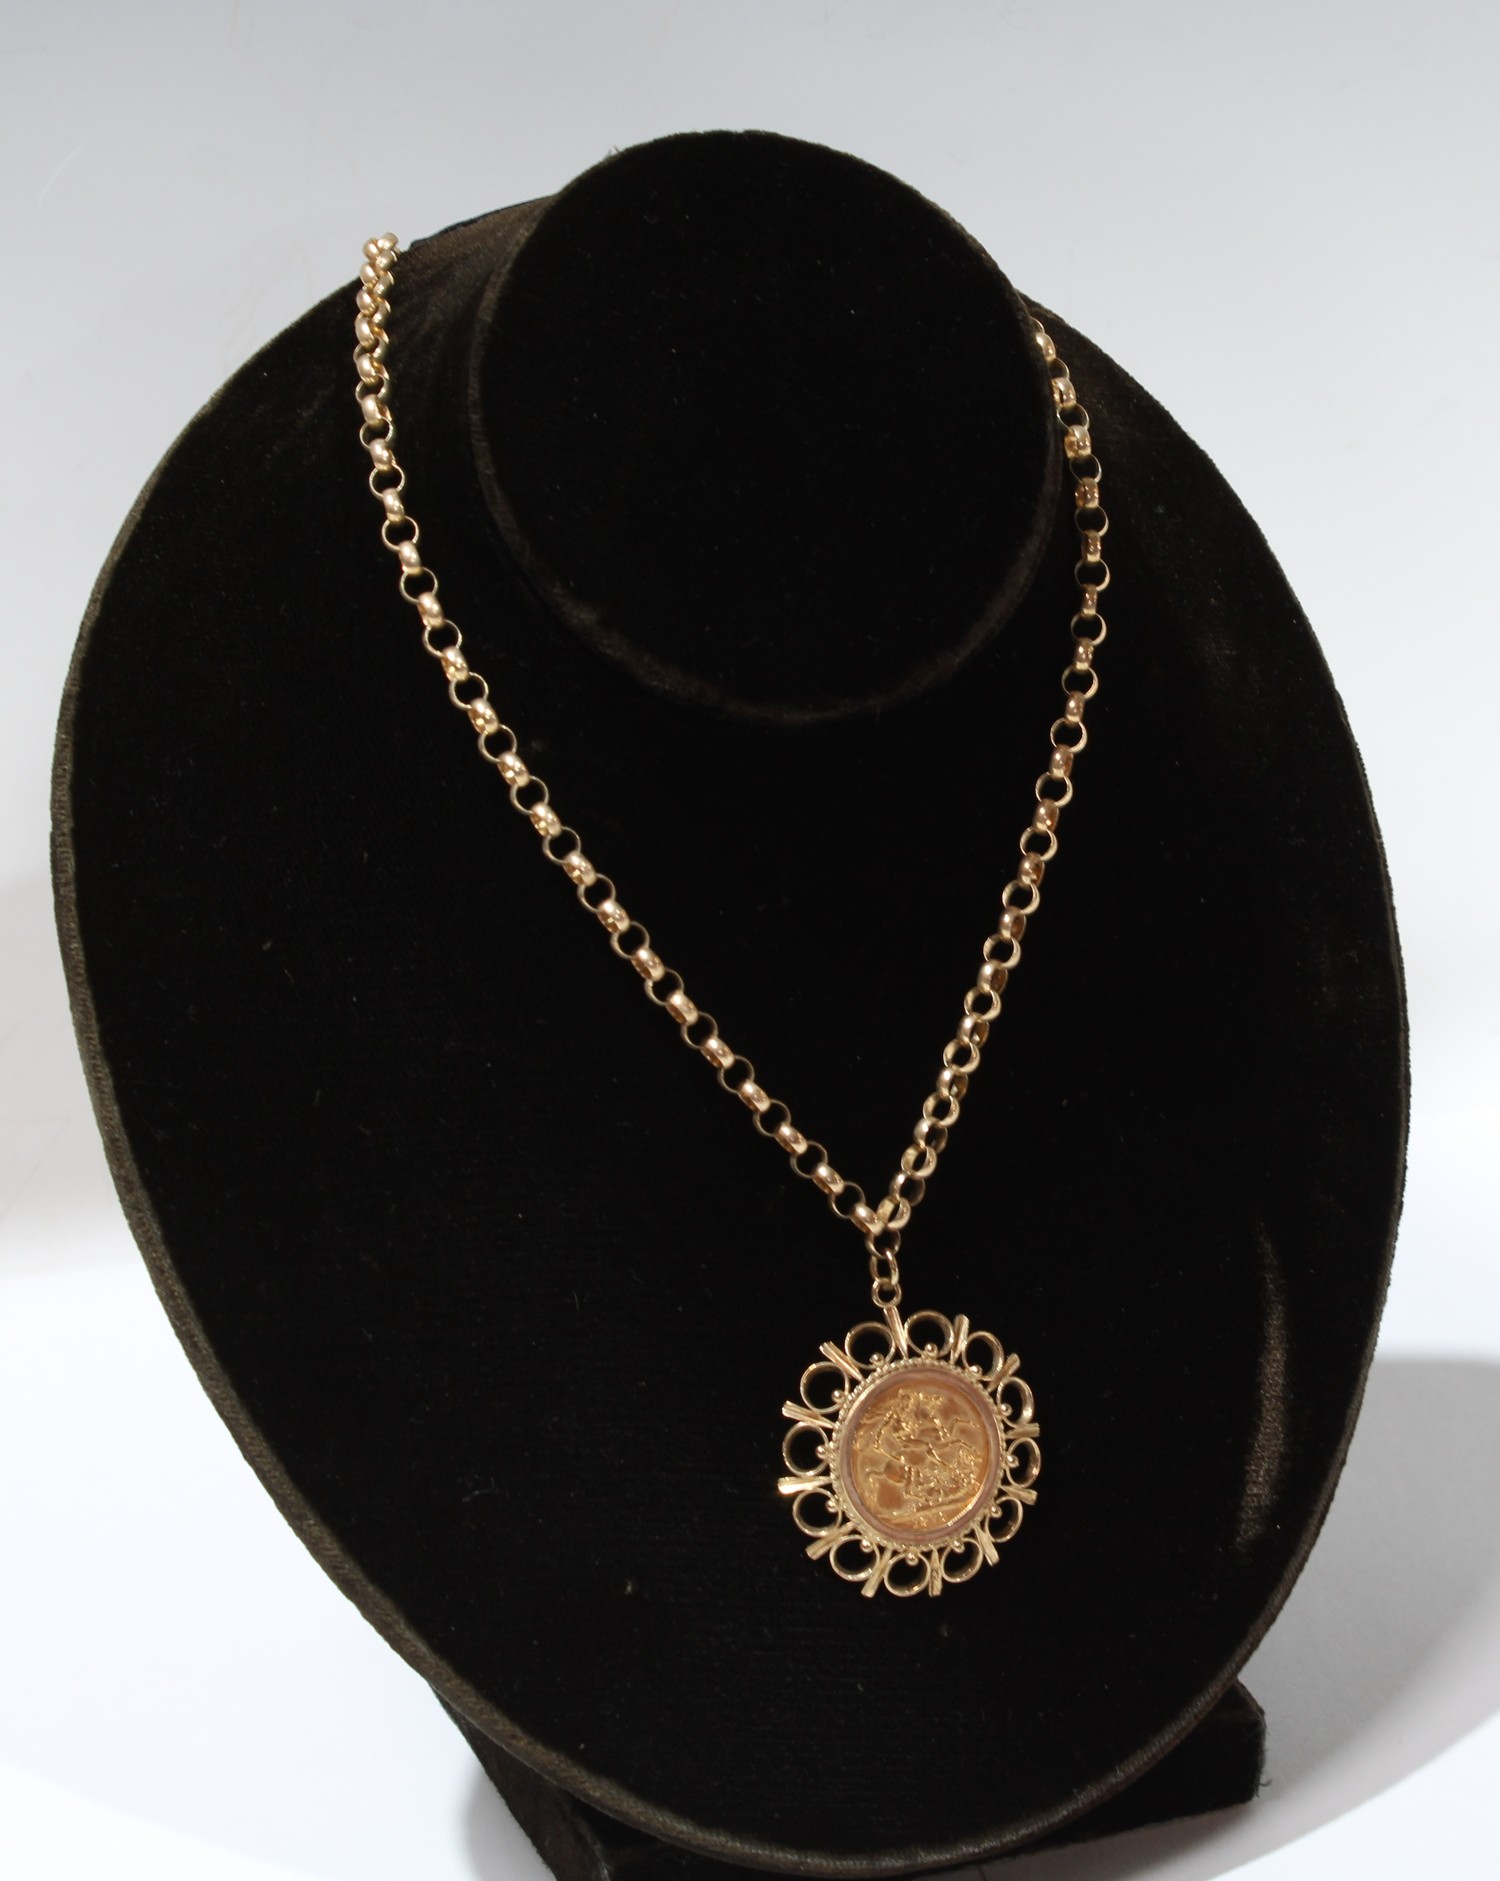 An Elizabeth II gold sovereign 1976, mounted in 9ct gold as a pendant...